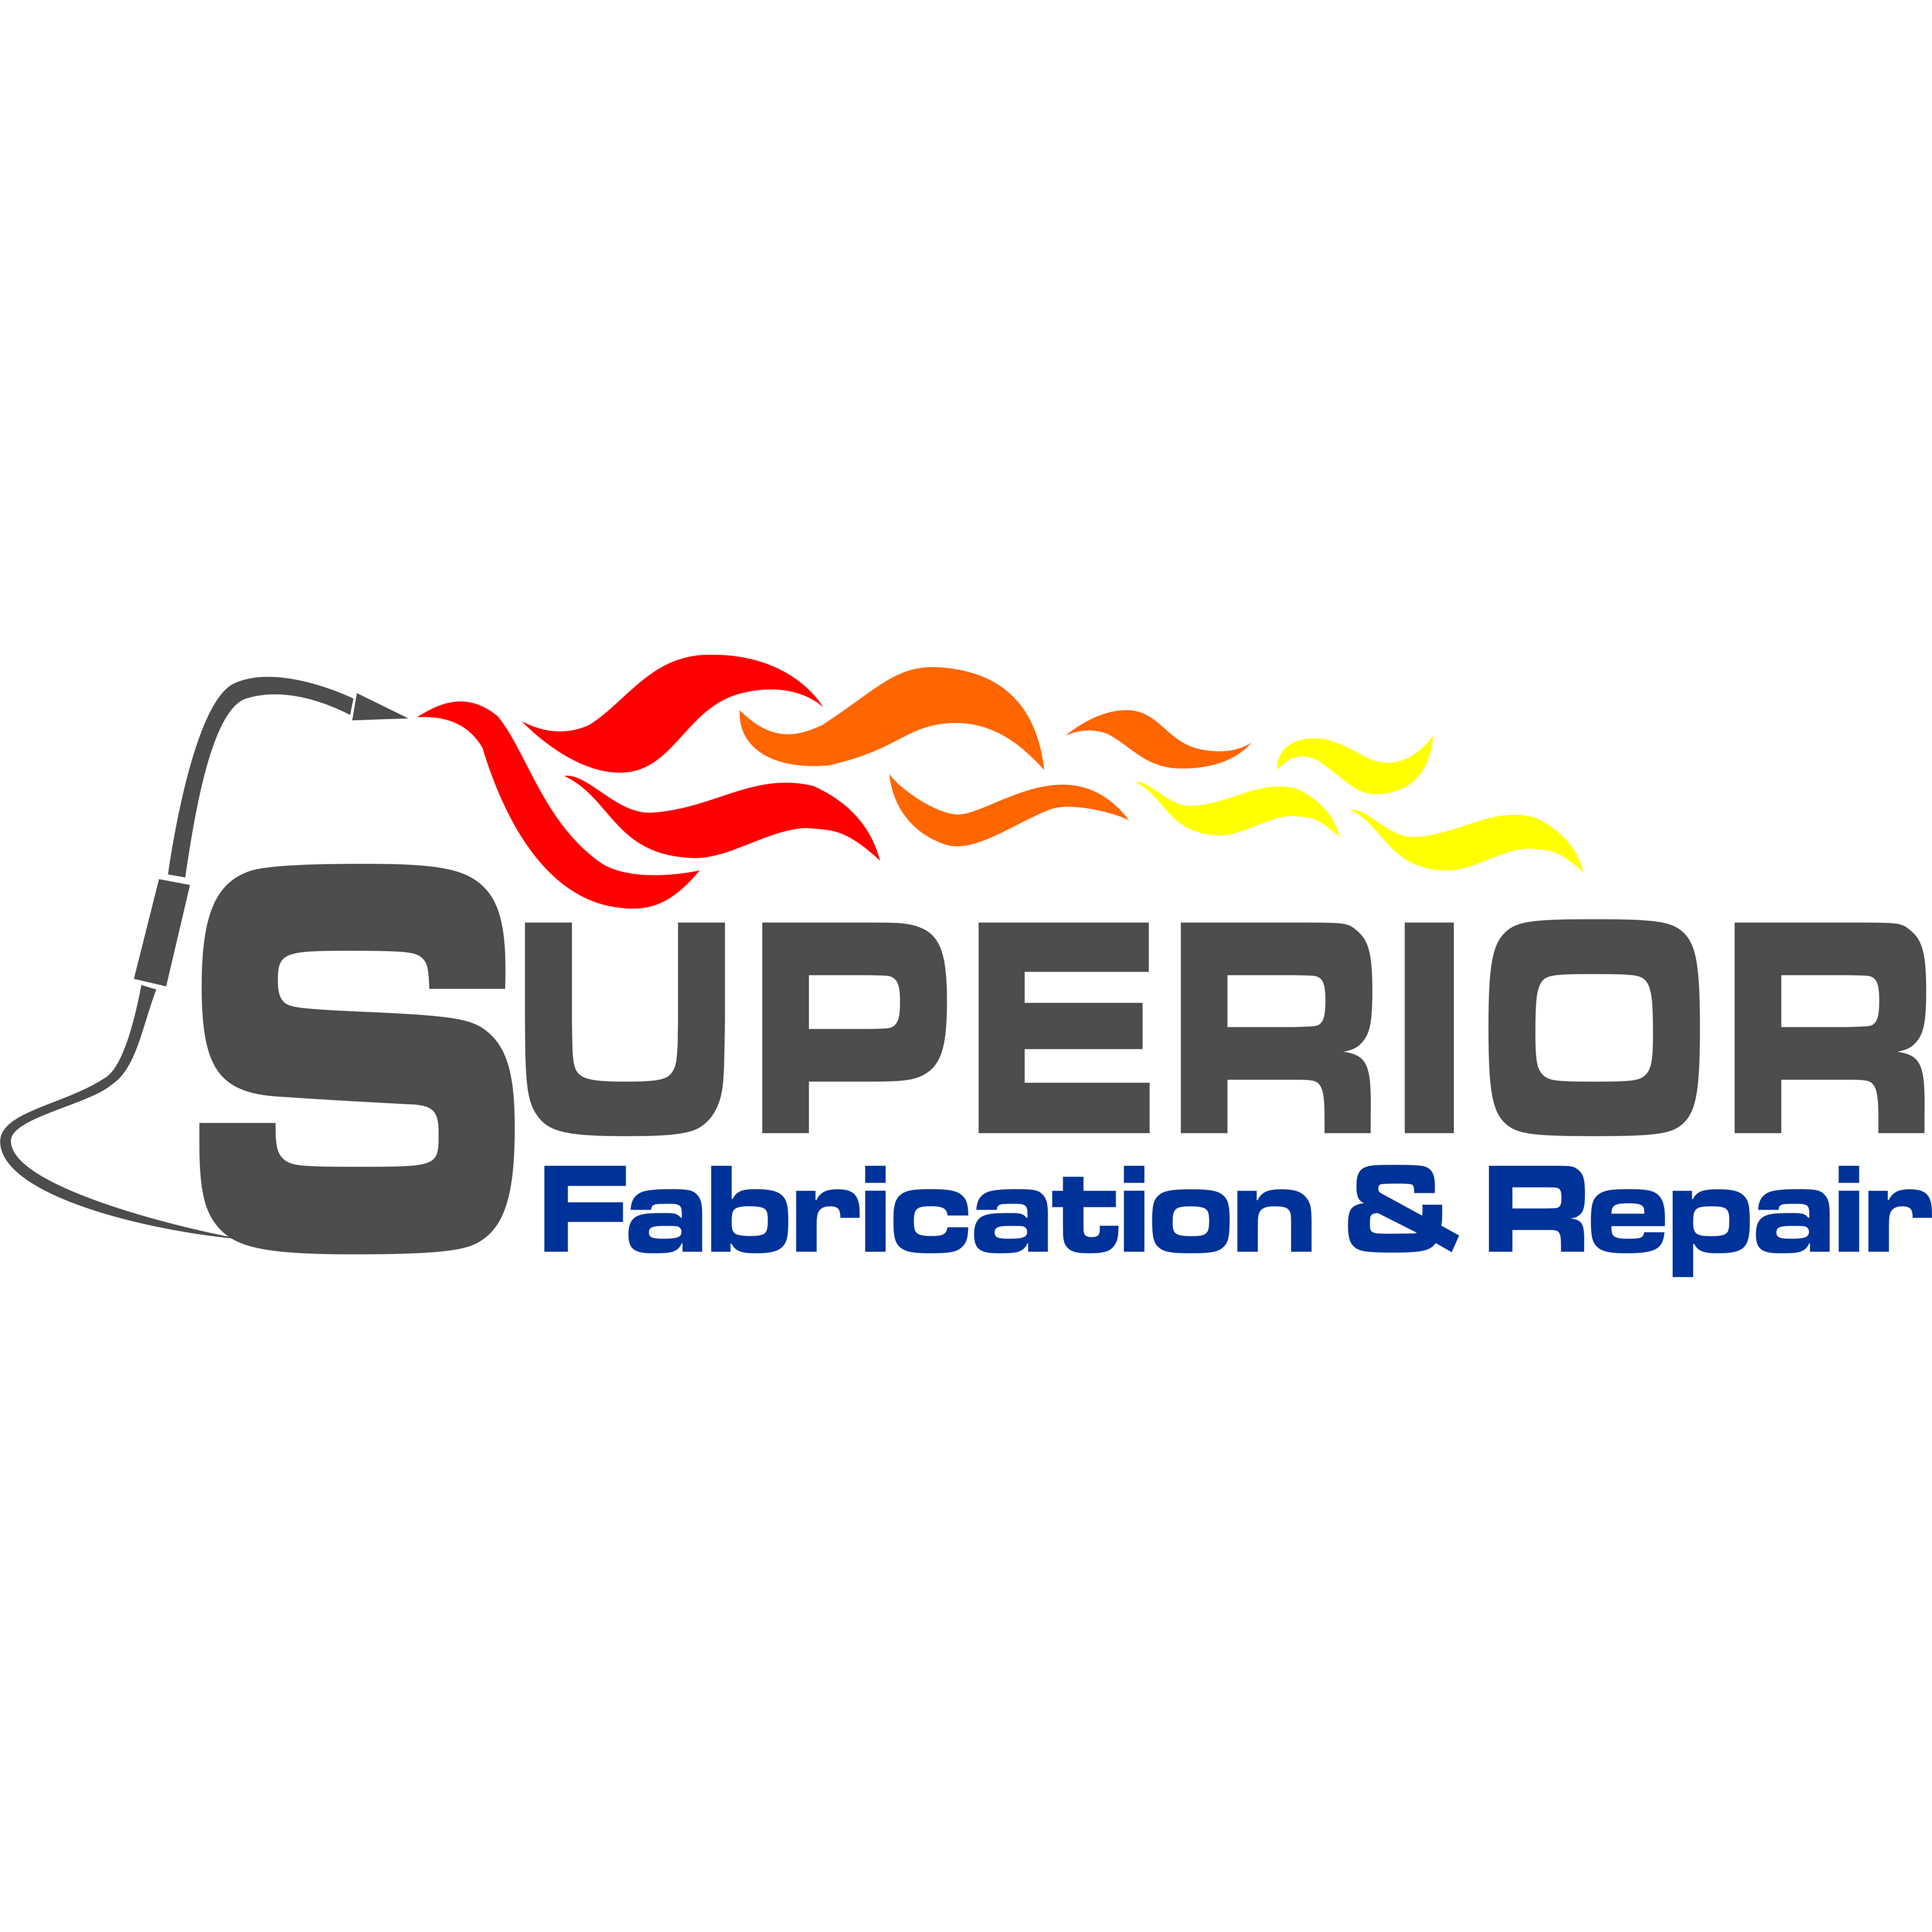 Superior Fabrication Amp Repair Filer Idaho Id